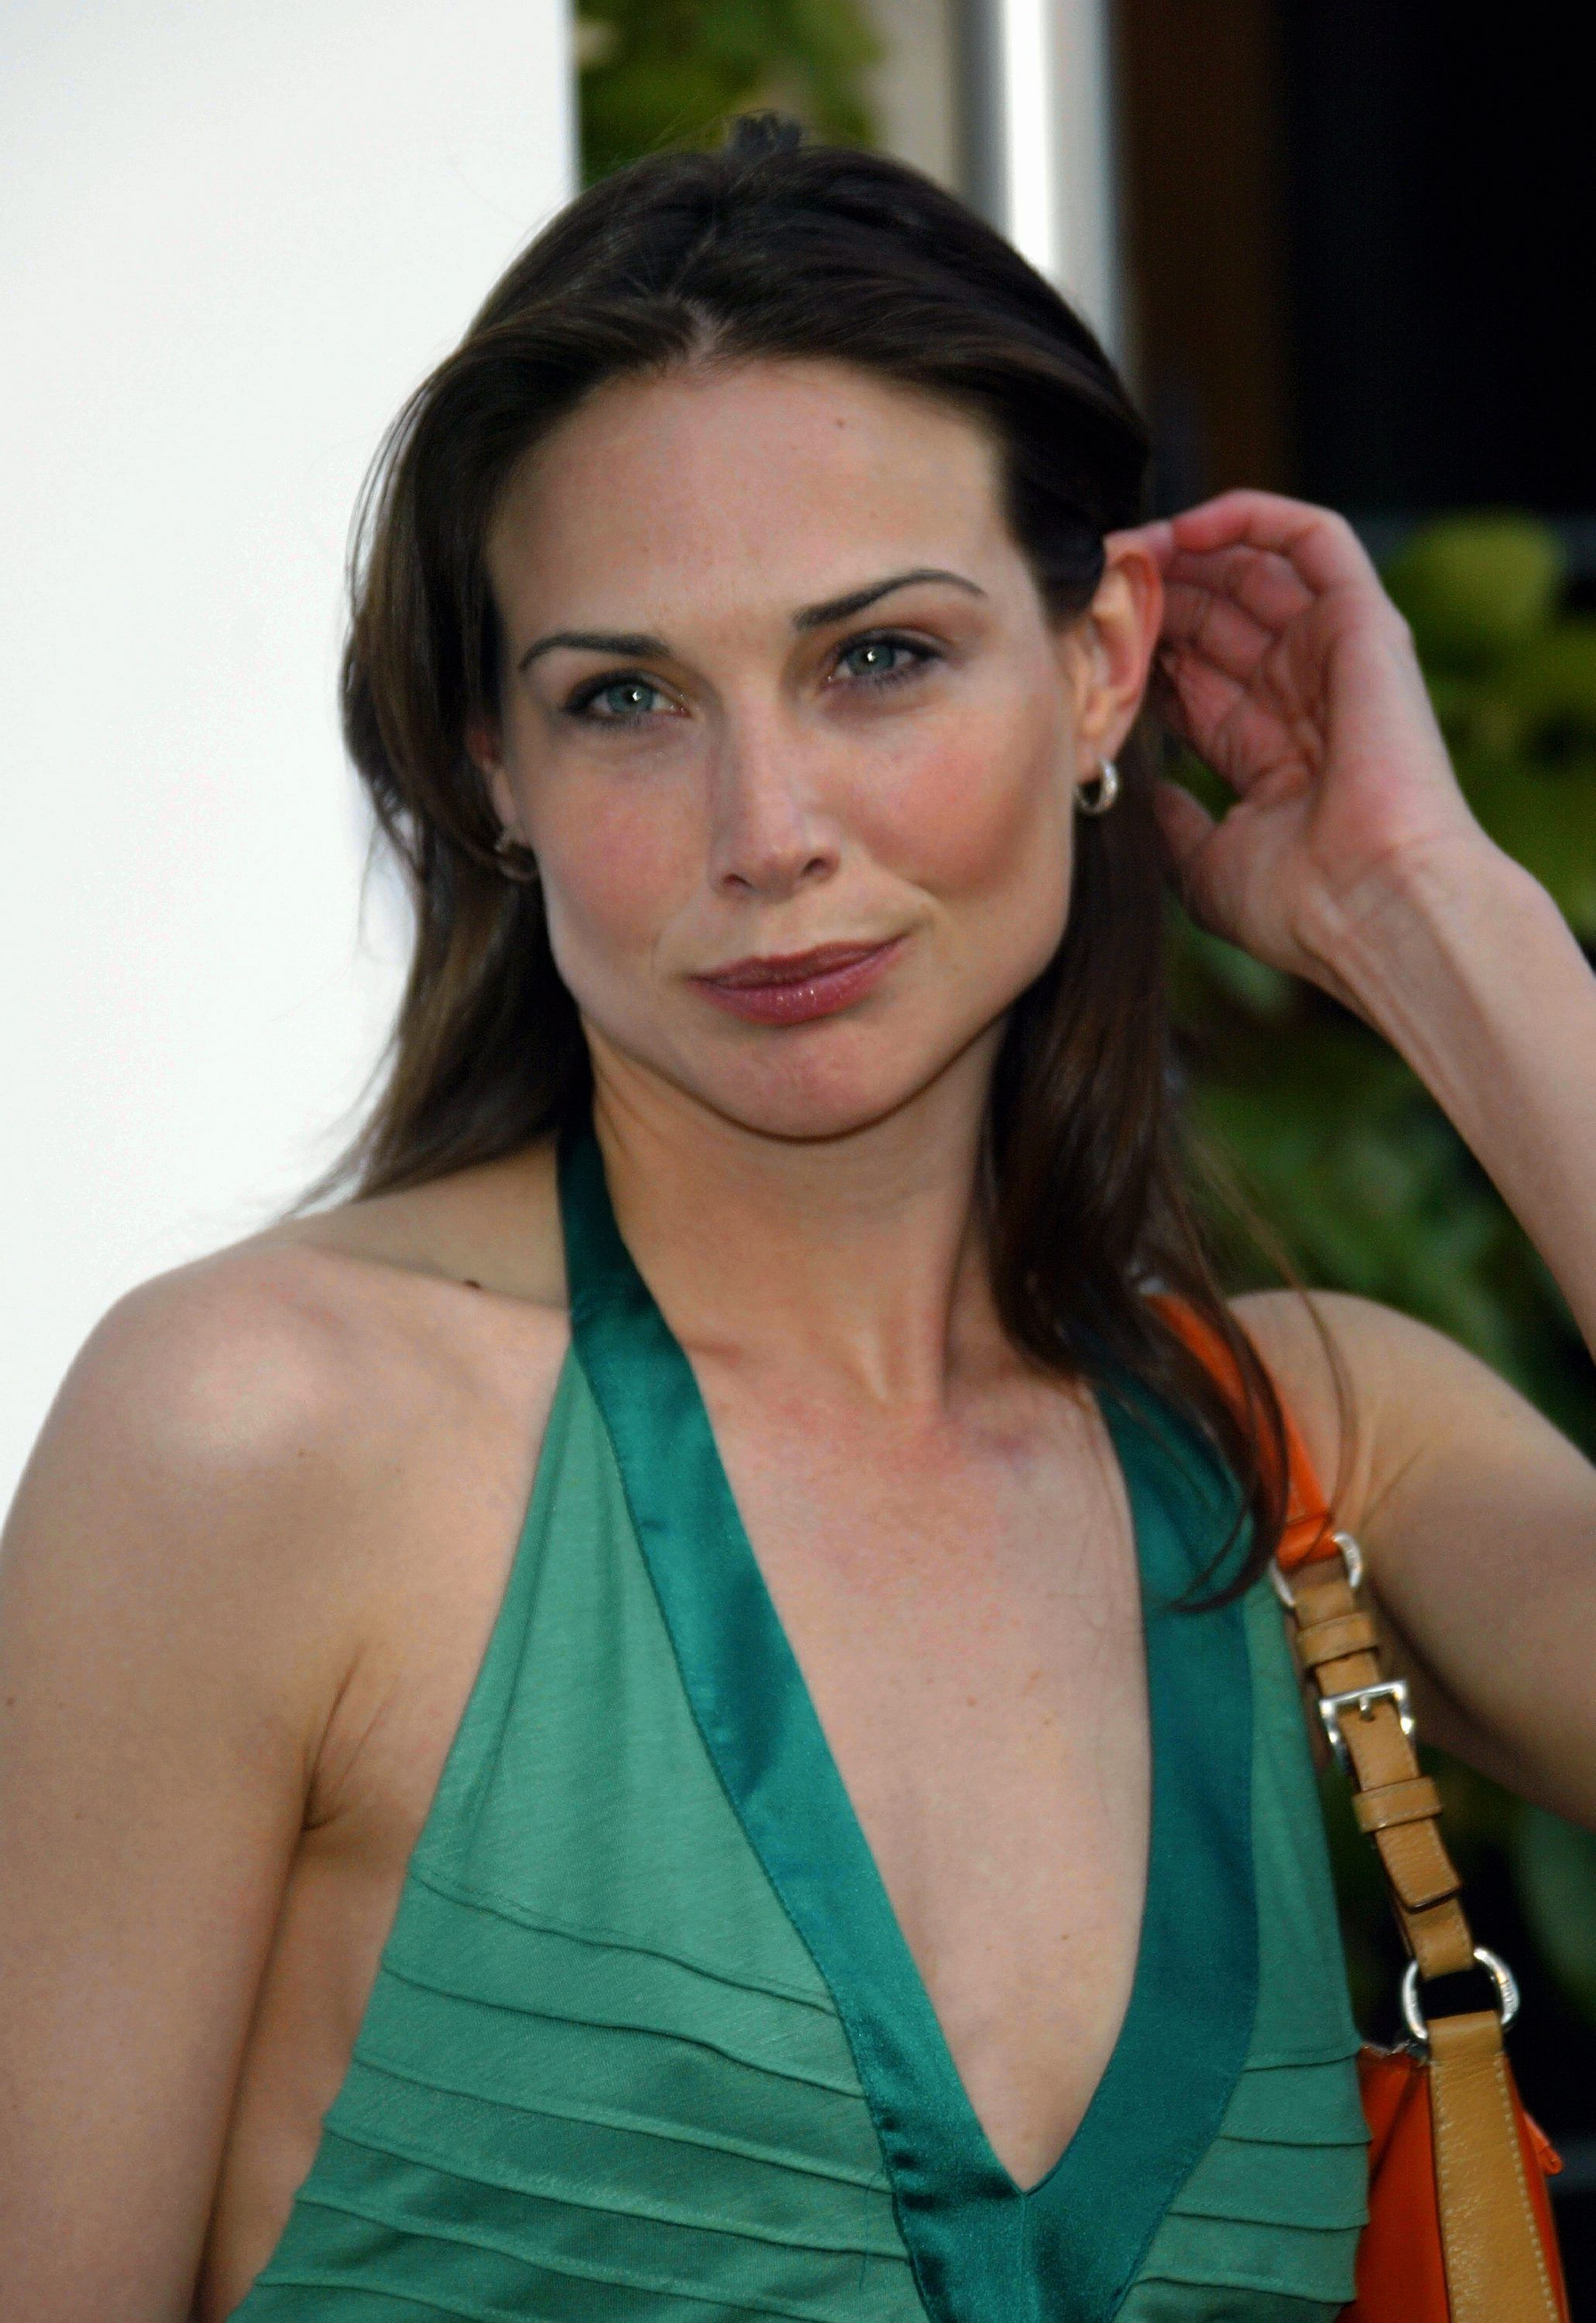 Snapchat Claire Forlani nudes (42 foto and video), Sexy, Hot, Selfie, in bikini 2018